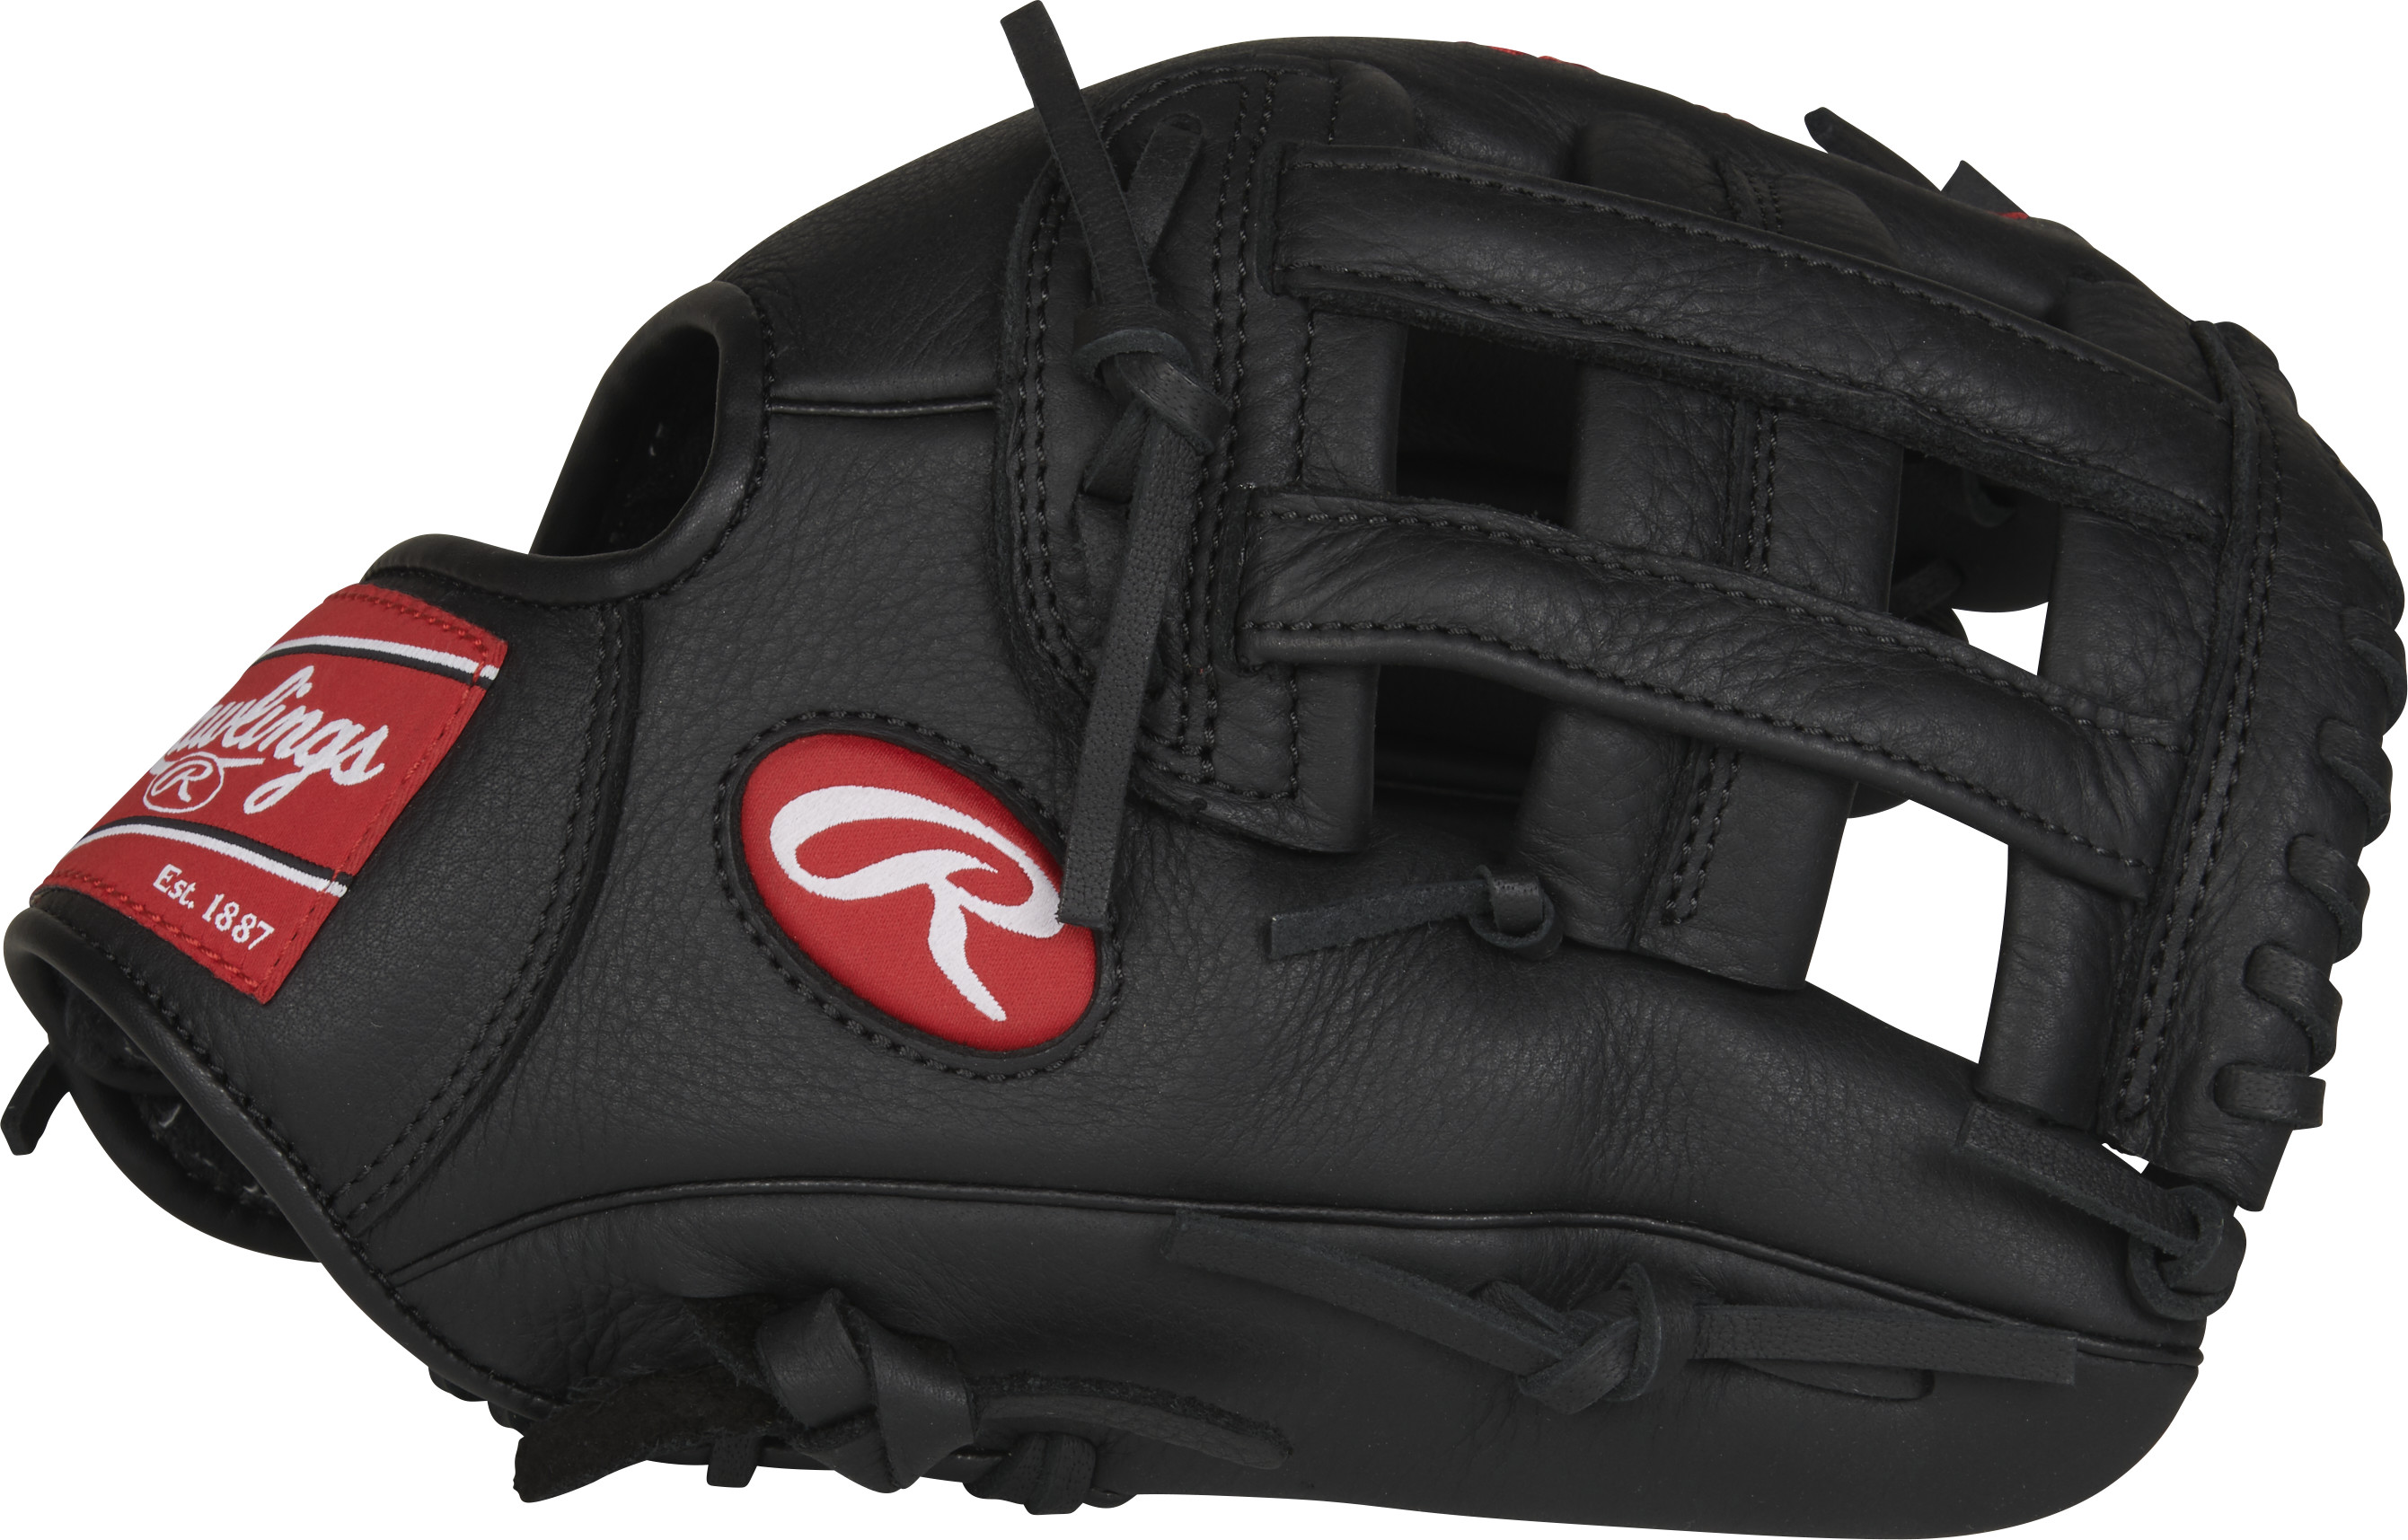 http://www.bestbatdeals.com/images/gloves/rawlings/SPL112CS-3.jpg